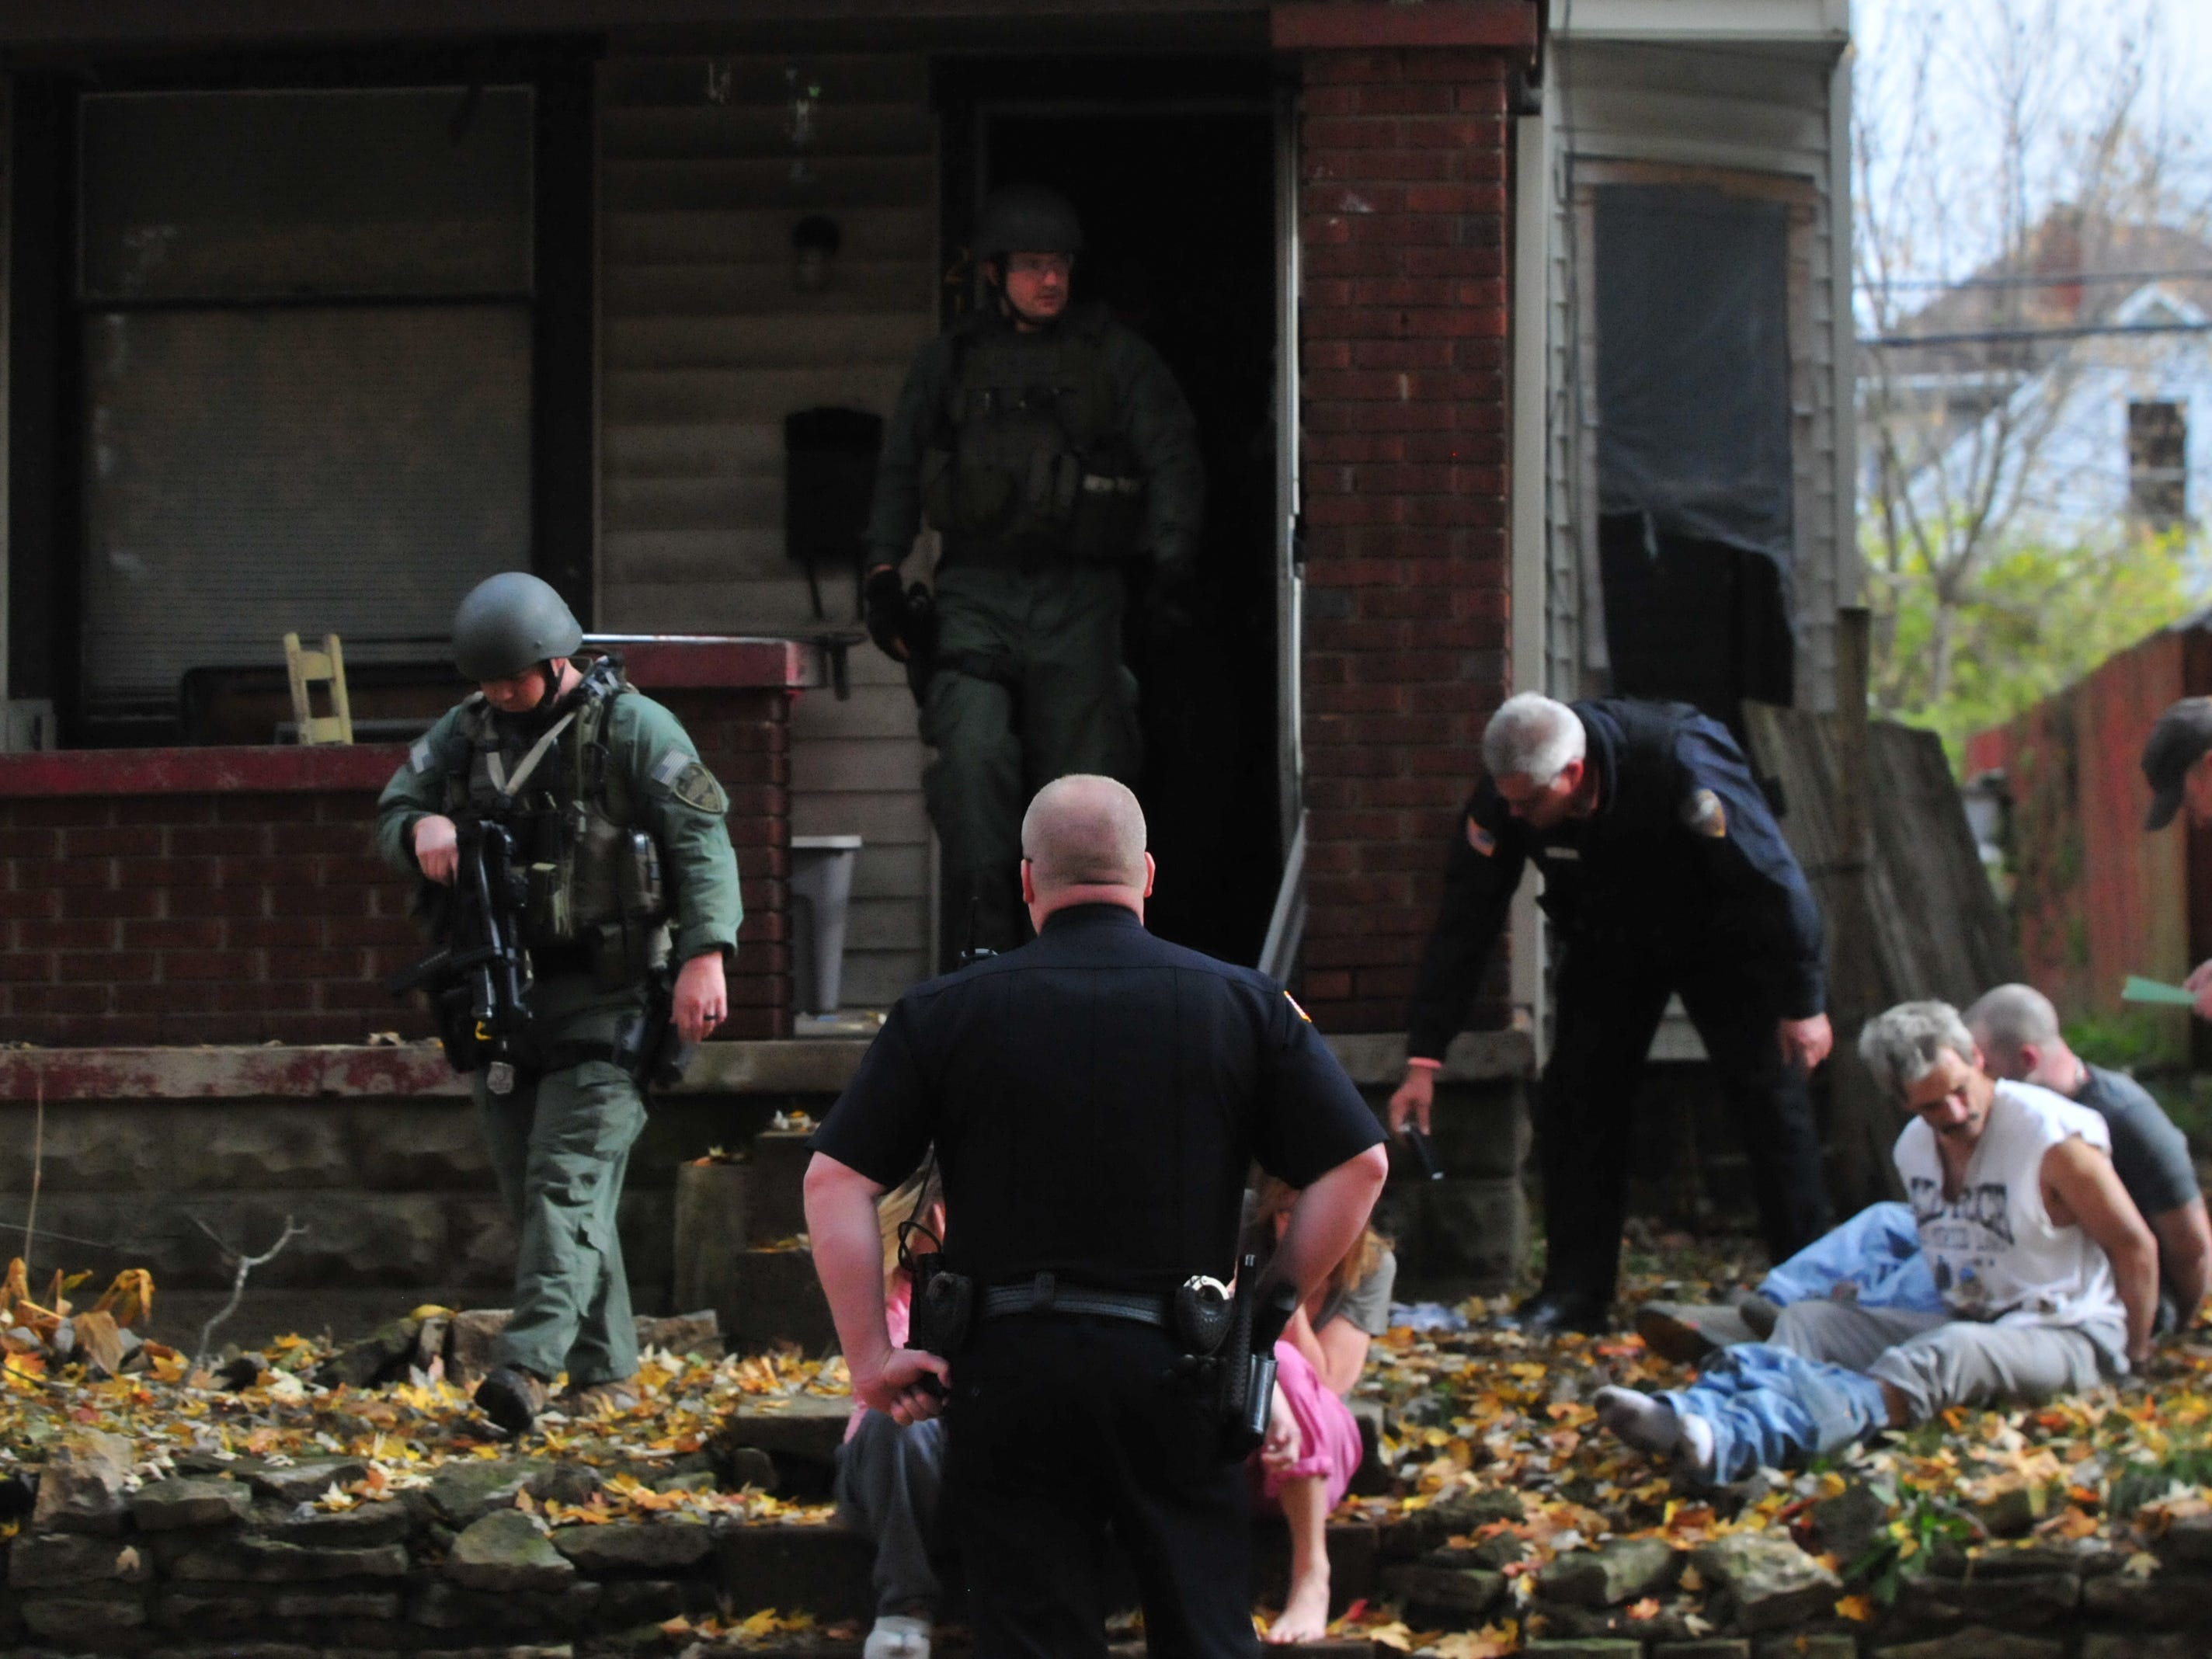 SWAT team members leave 219 N. 16th St. during a raid Monday.